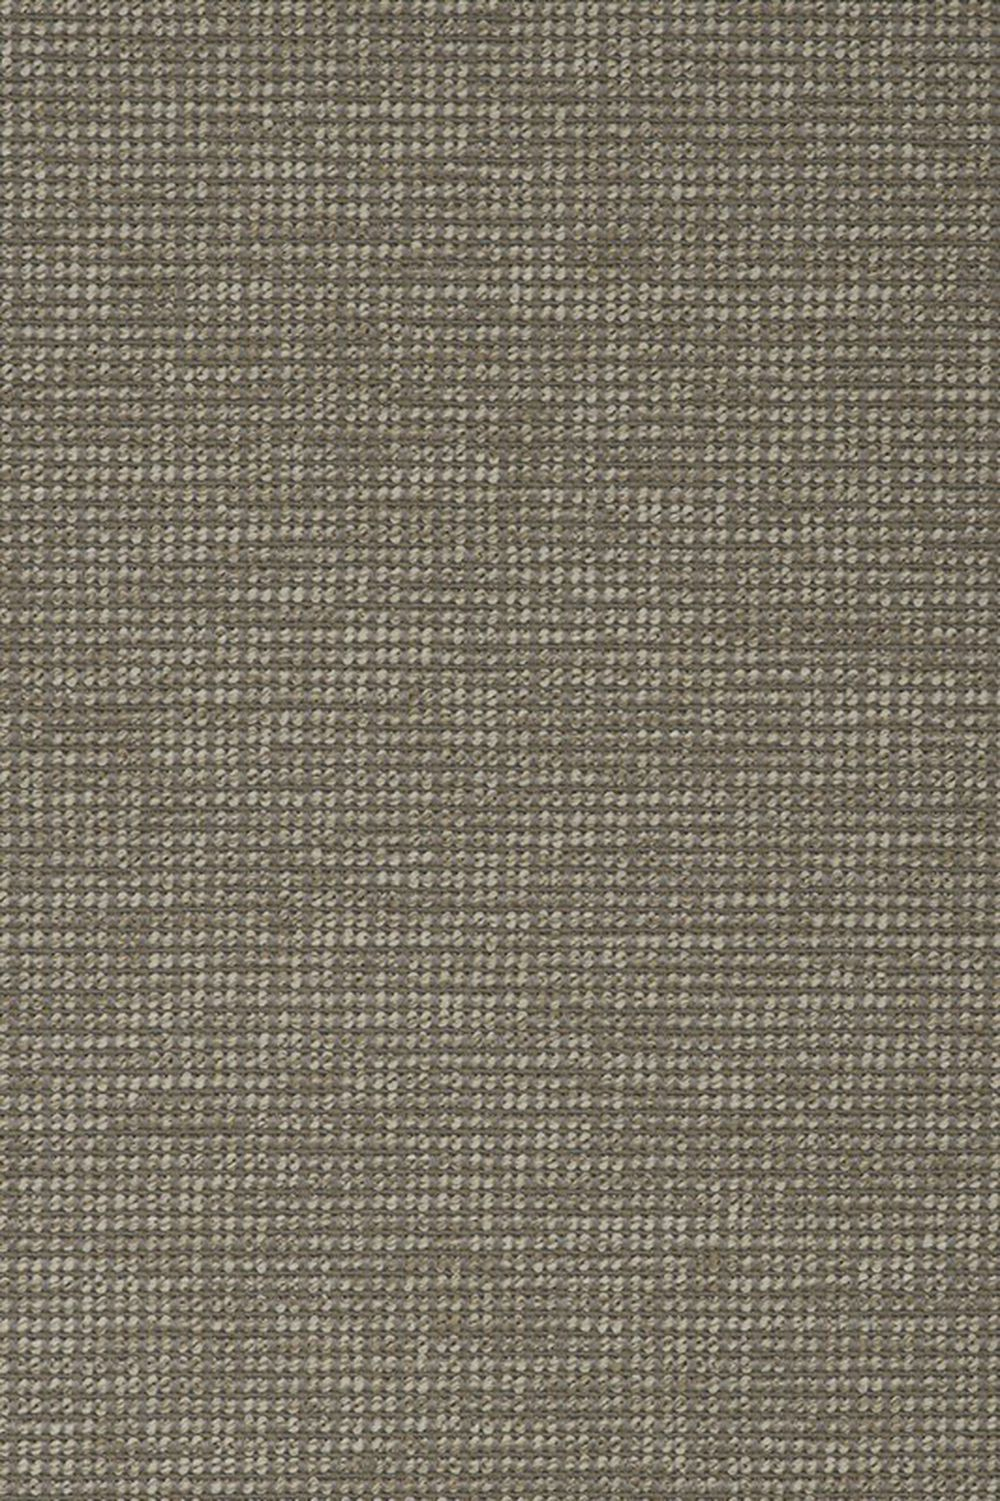 Photo of the fabric Barbados Jute swatch by Mokum. Use for Upholstery Heavy Duty, Accessory. Style of Plain, Texture